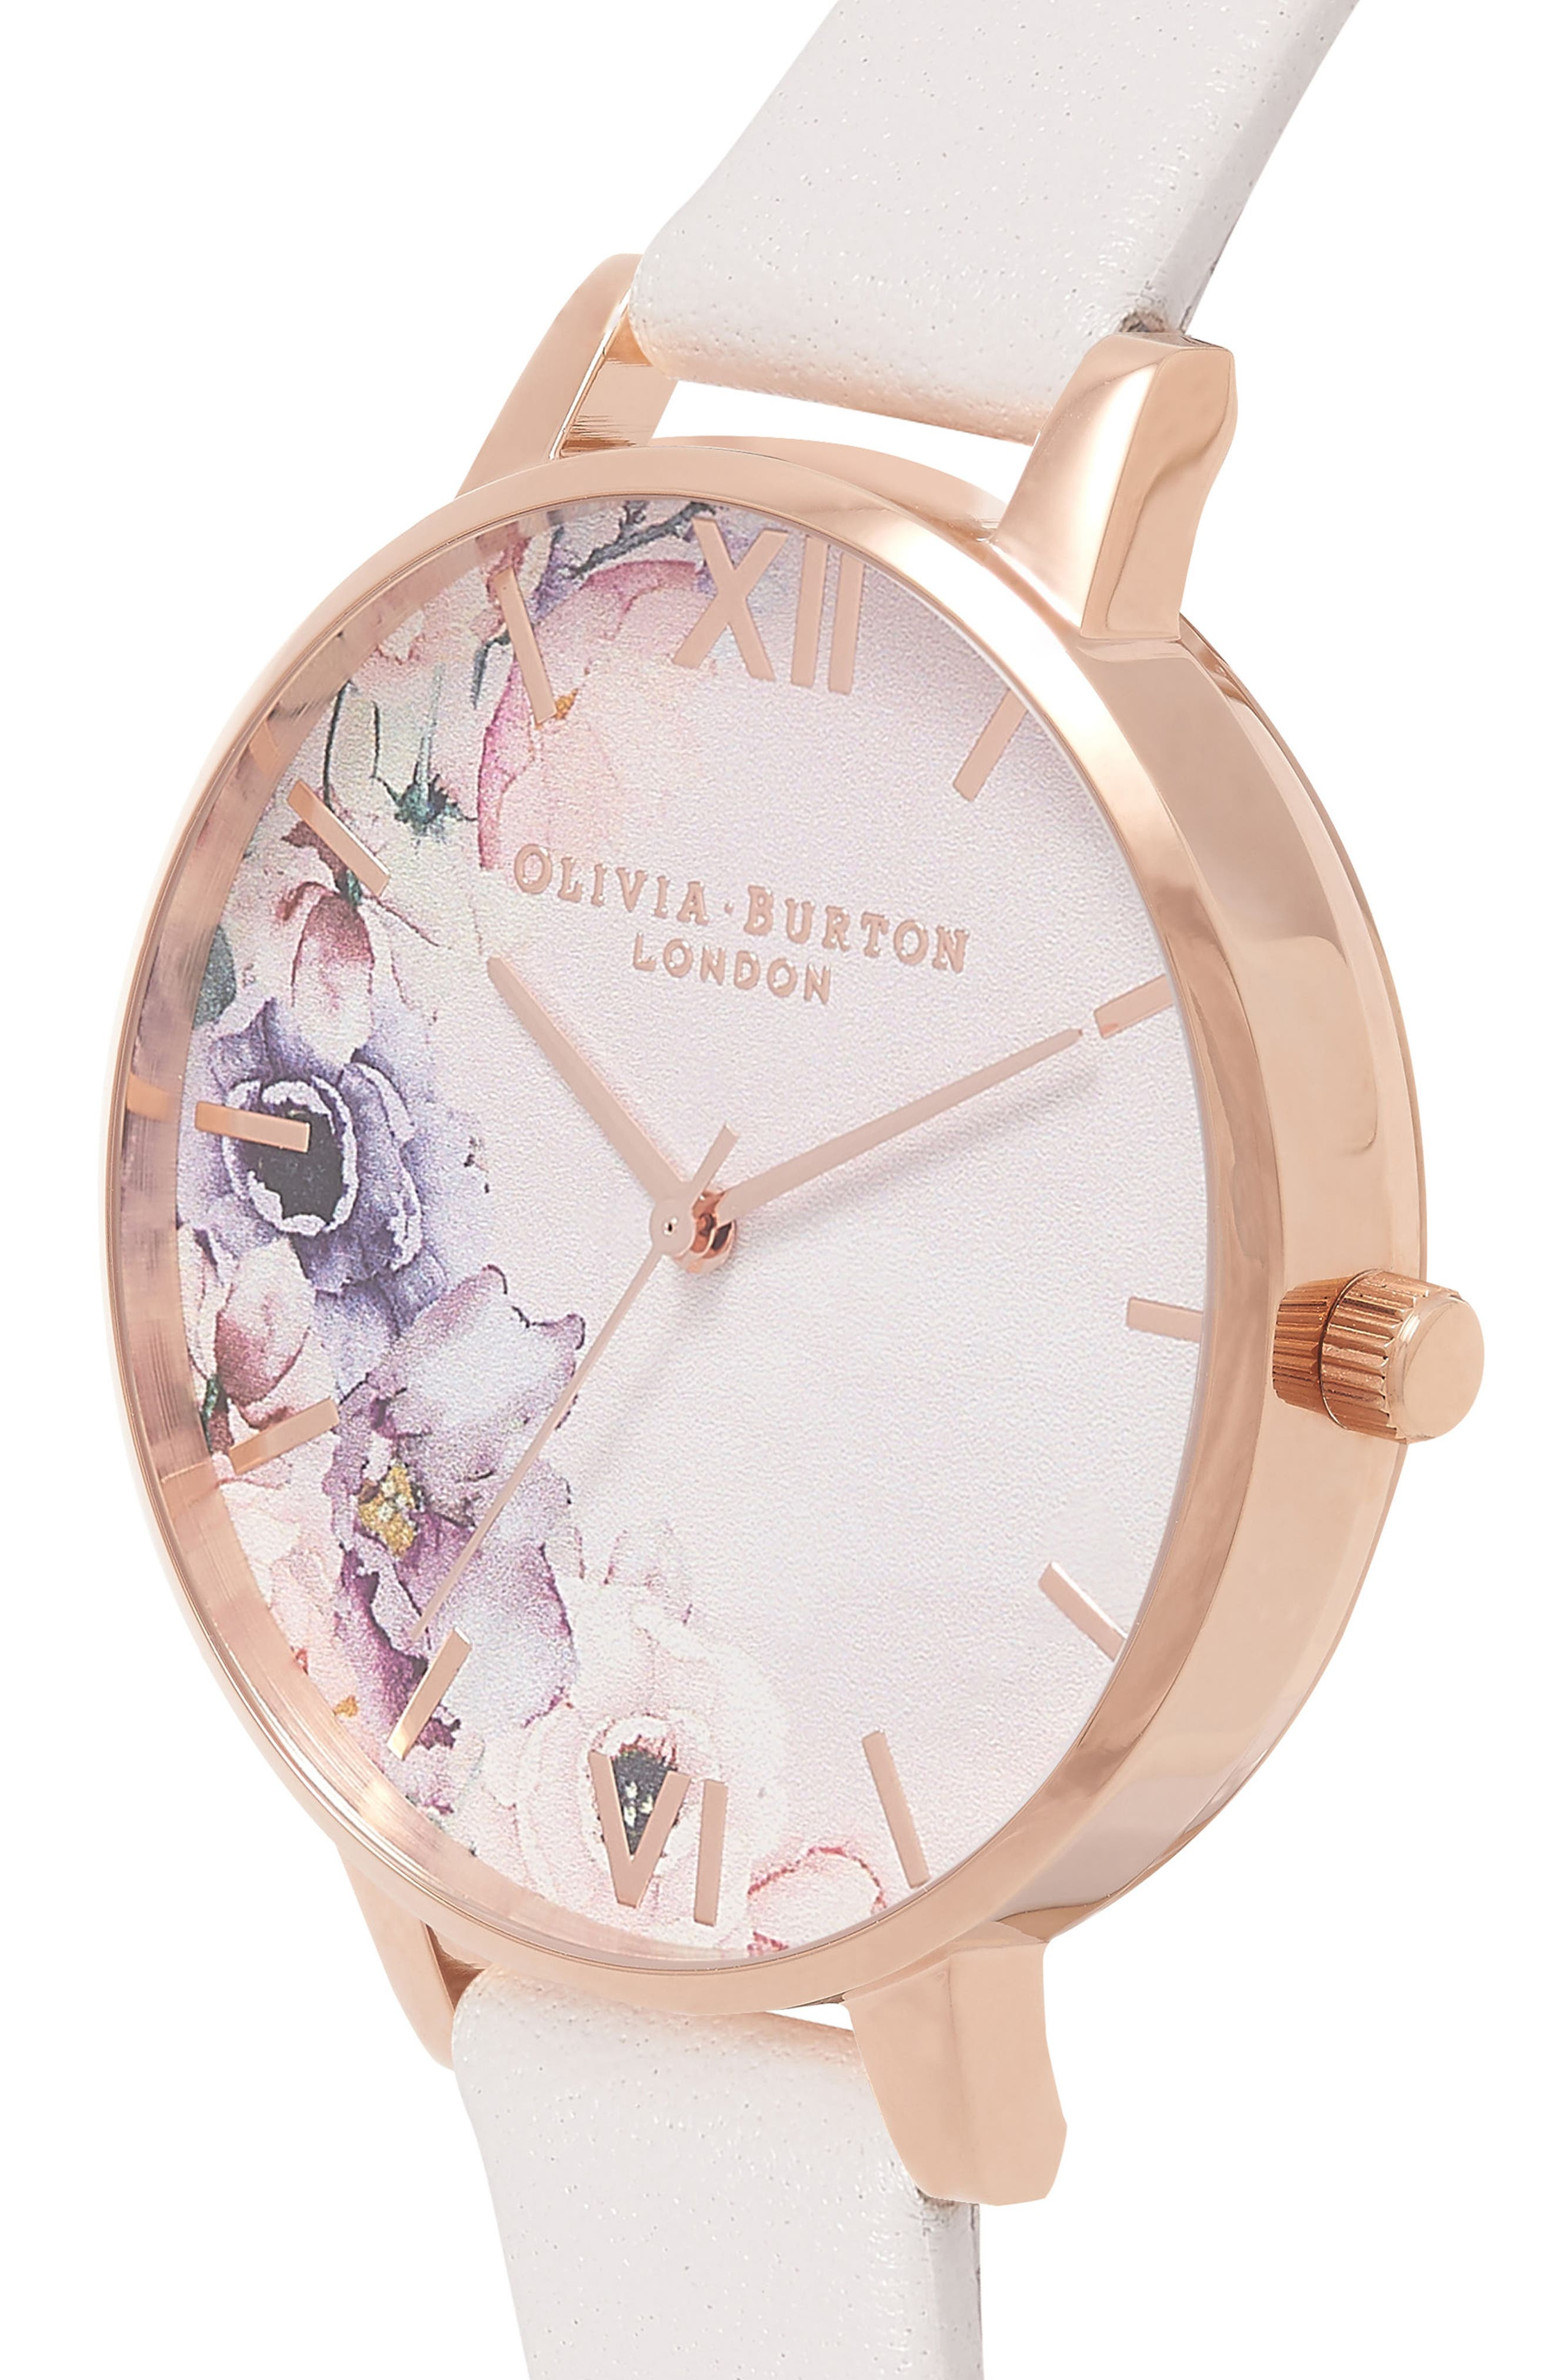 Watercolour Florals Leather Strap Watch, 38mm,                             Alternate thumbnail 6, color,                             BLUSH/ FLORAL/ ROSE GOLD